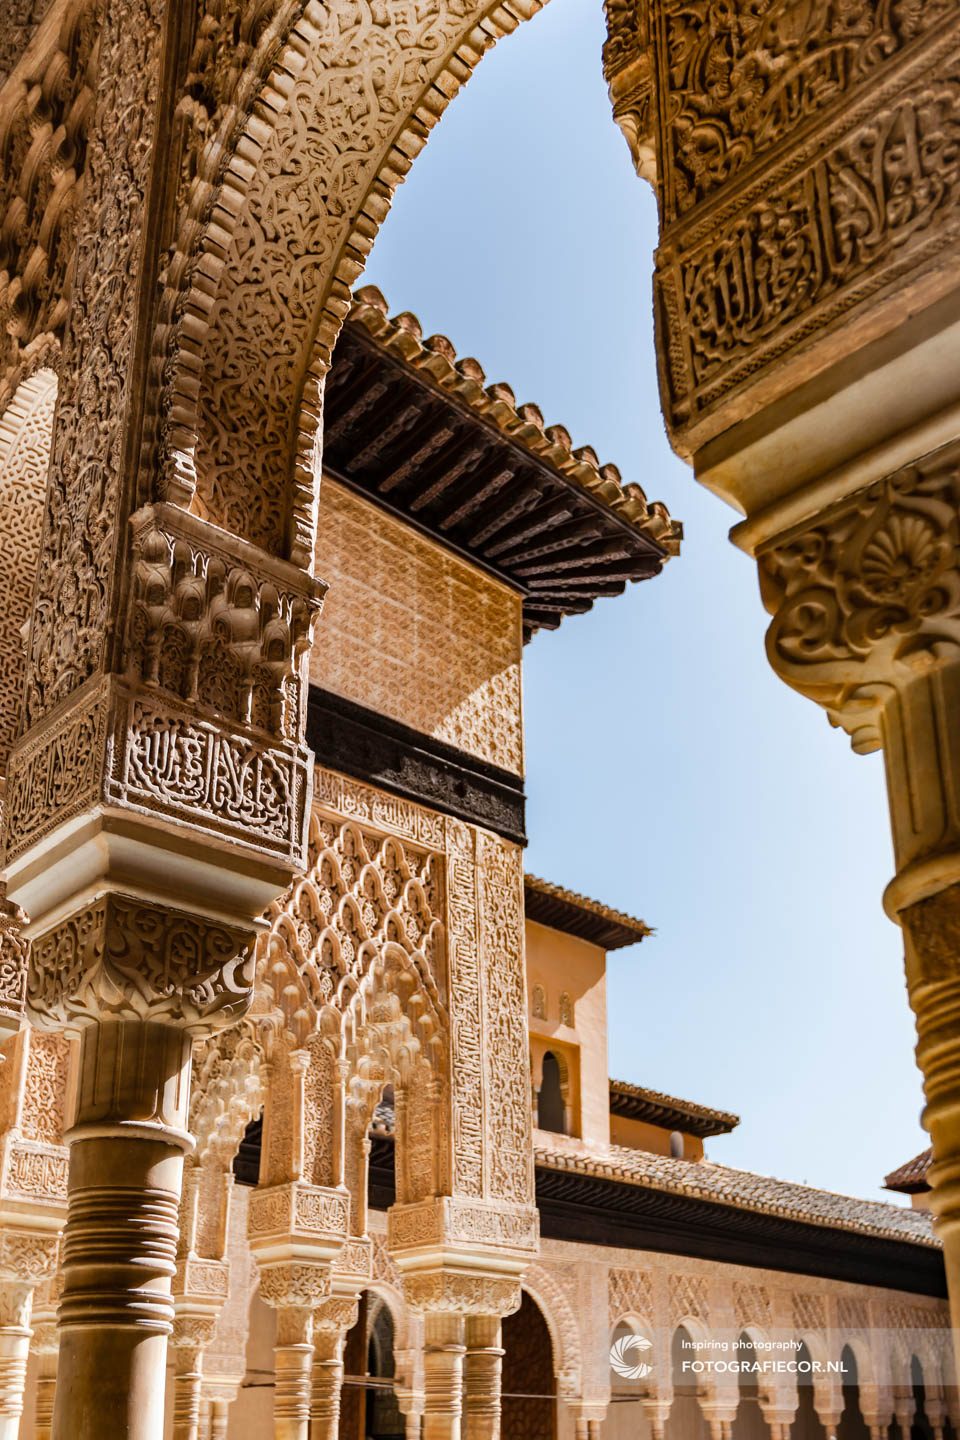 Palace of the Lions | Arabeaque | Alhambra Granada | Andalusie | bezienswaardigheden | Generalife | Granada | Nasrid | Palace | Spanje | Zuid Spanje | Architectuur